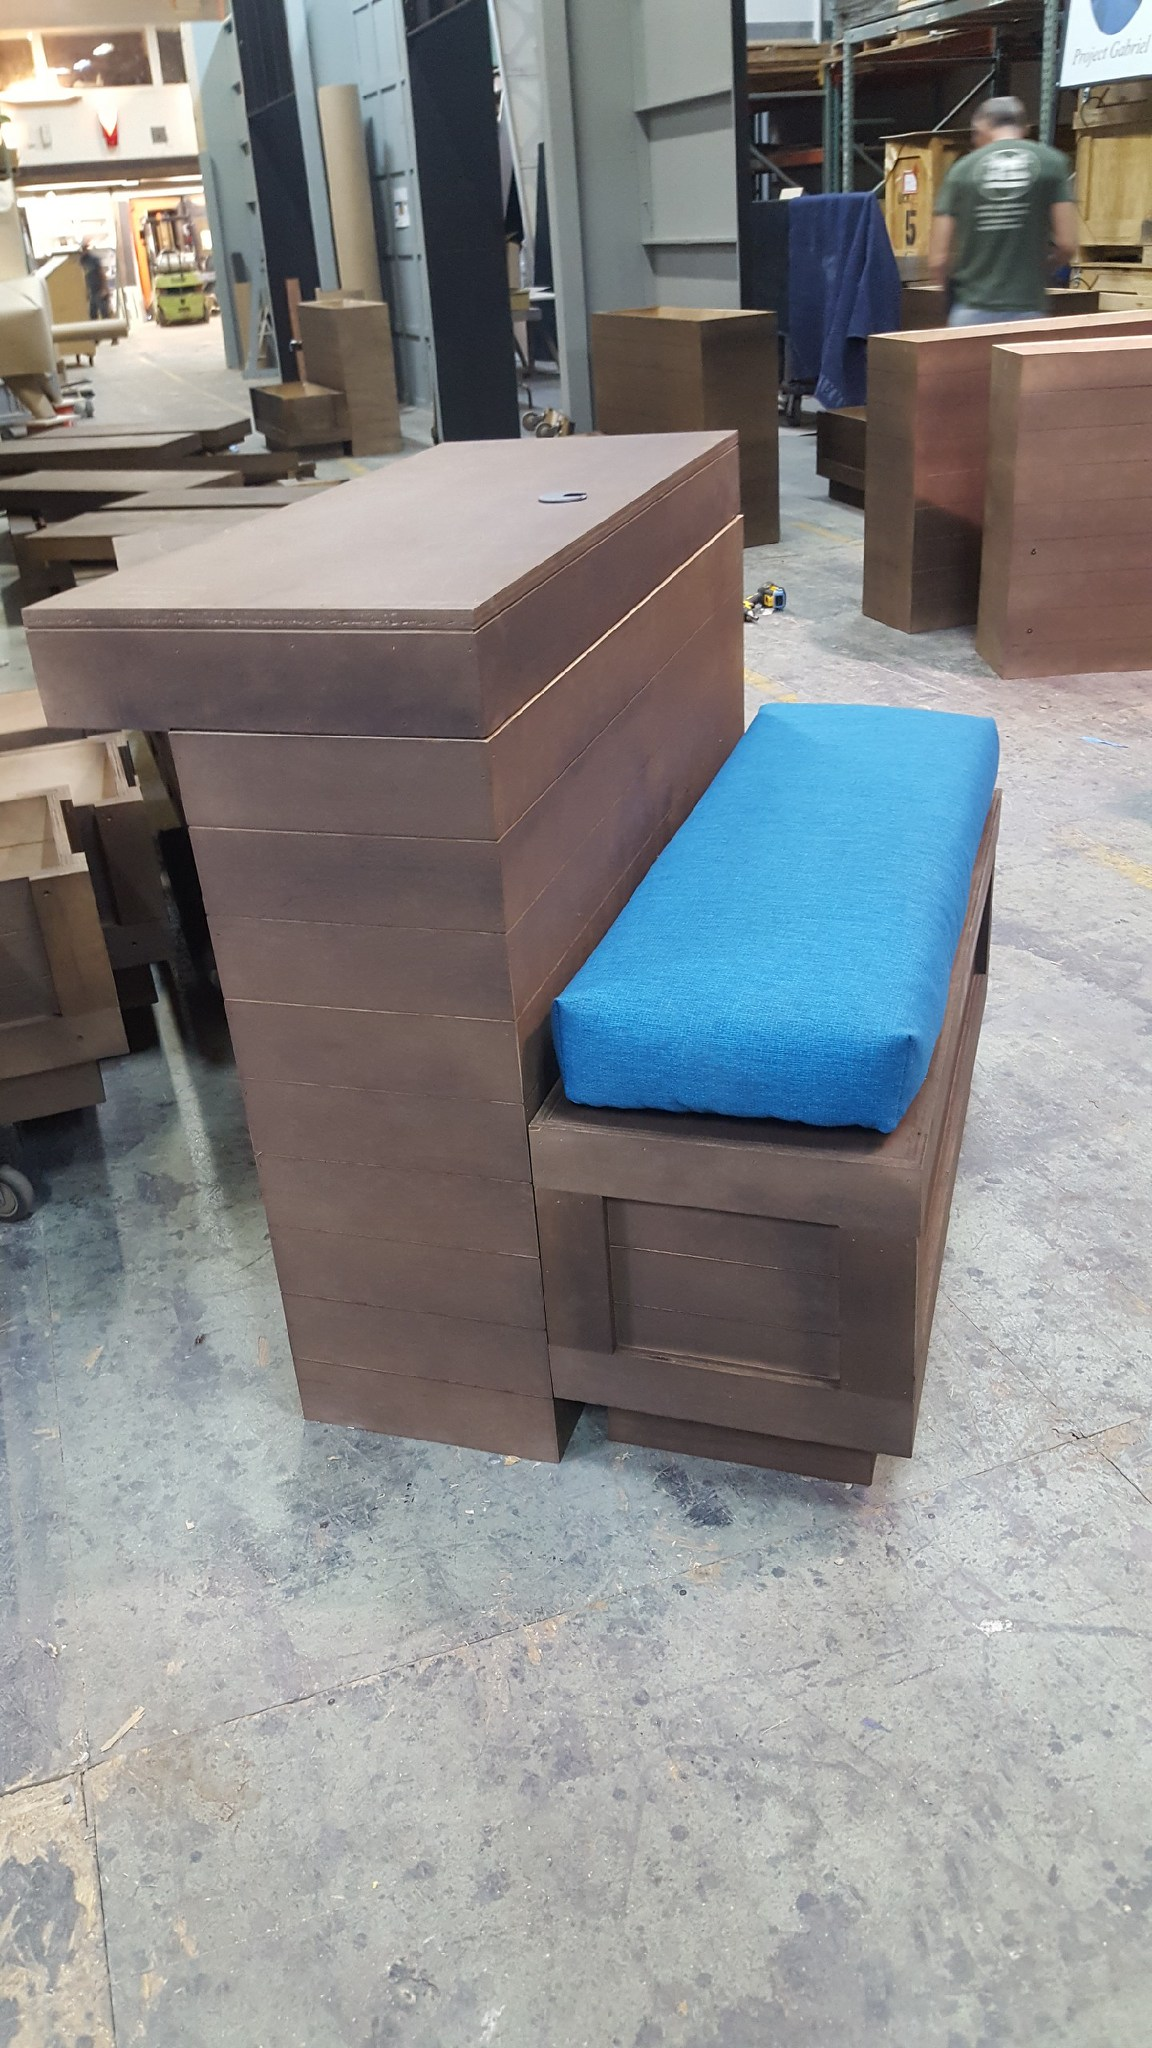 I made 20 cushions exactly alike to go on these custom made benches.